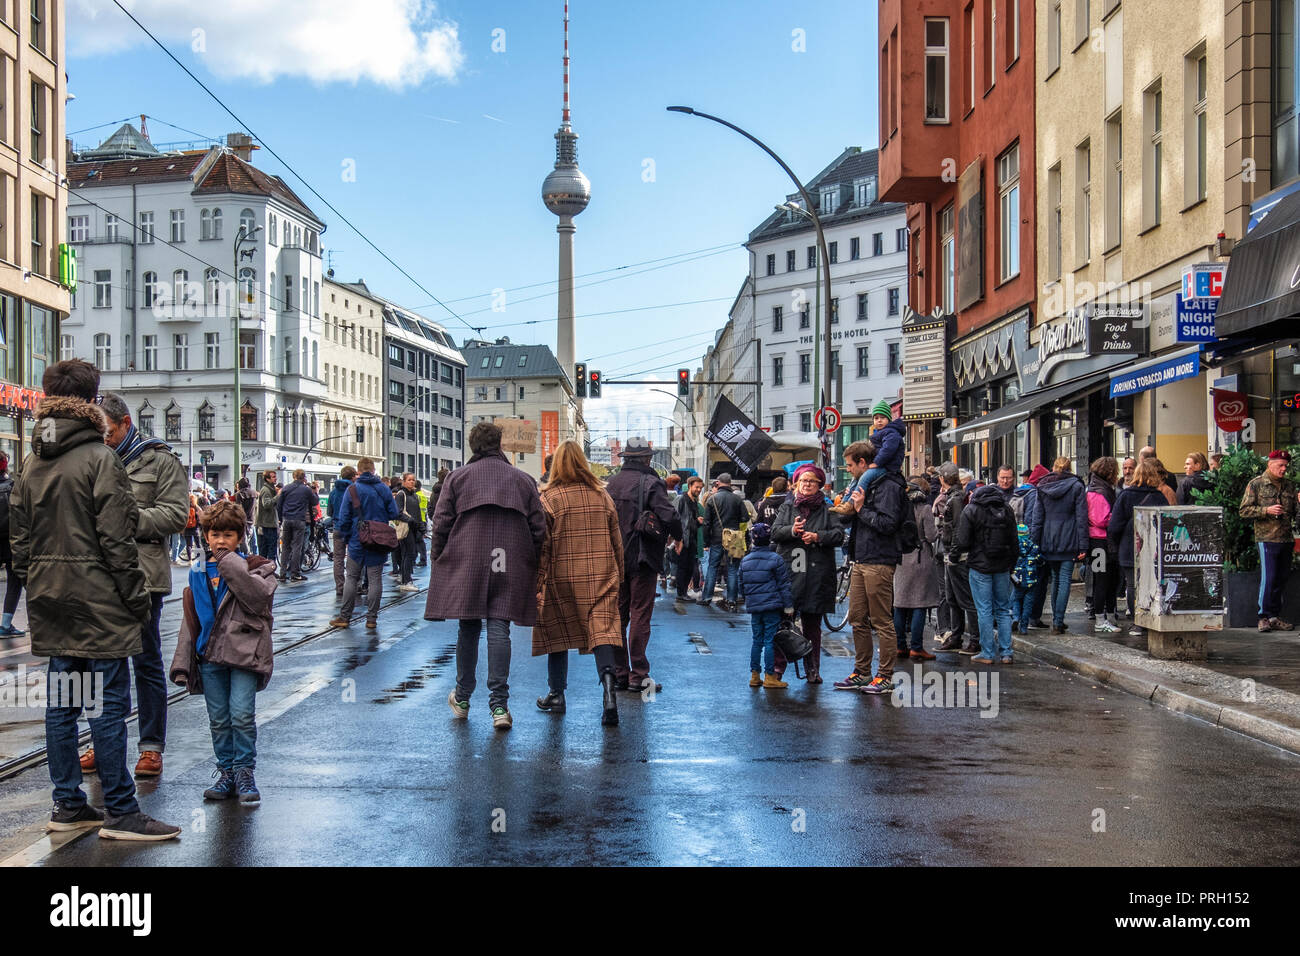 Berlin, Mitte, Germany 3 October 2018. Club scene activists protest against a planned right-wing extremist demonstration on the German Day of Unity. The protesters gathered at Rosenthaler Platz to stage a stationery rave under the slogan 'Dance against the Right' (Tanzen gegen Rechts) The protest was planned to counter the  planned right-wing extremist organization 'Wir für Deutschland (WFD)' march from Hauptbahnhof through the centre of Berlin using the slogan 'Day of the Nation' Credit: Eden Breitz/Alamy Live News - Stock Image